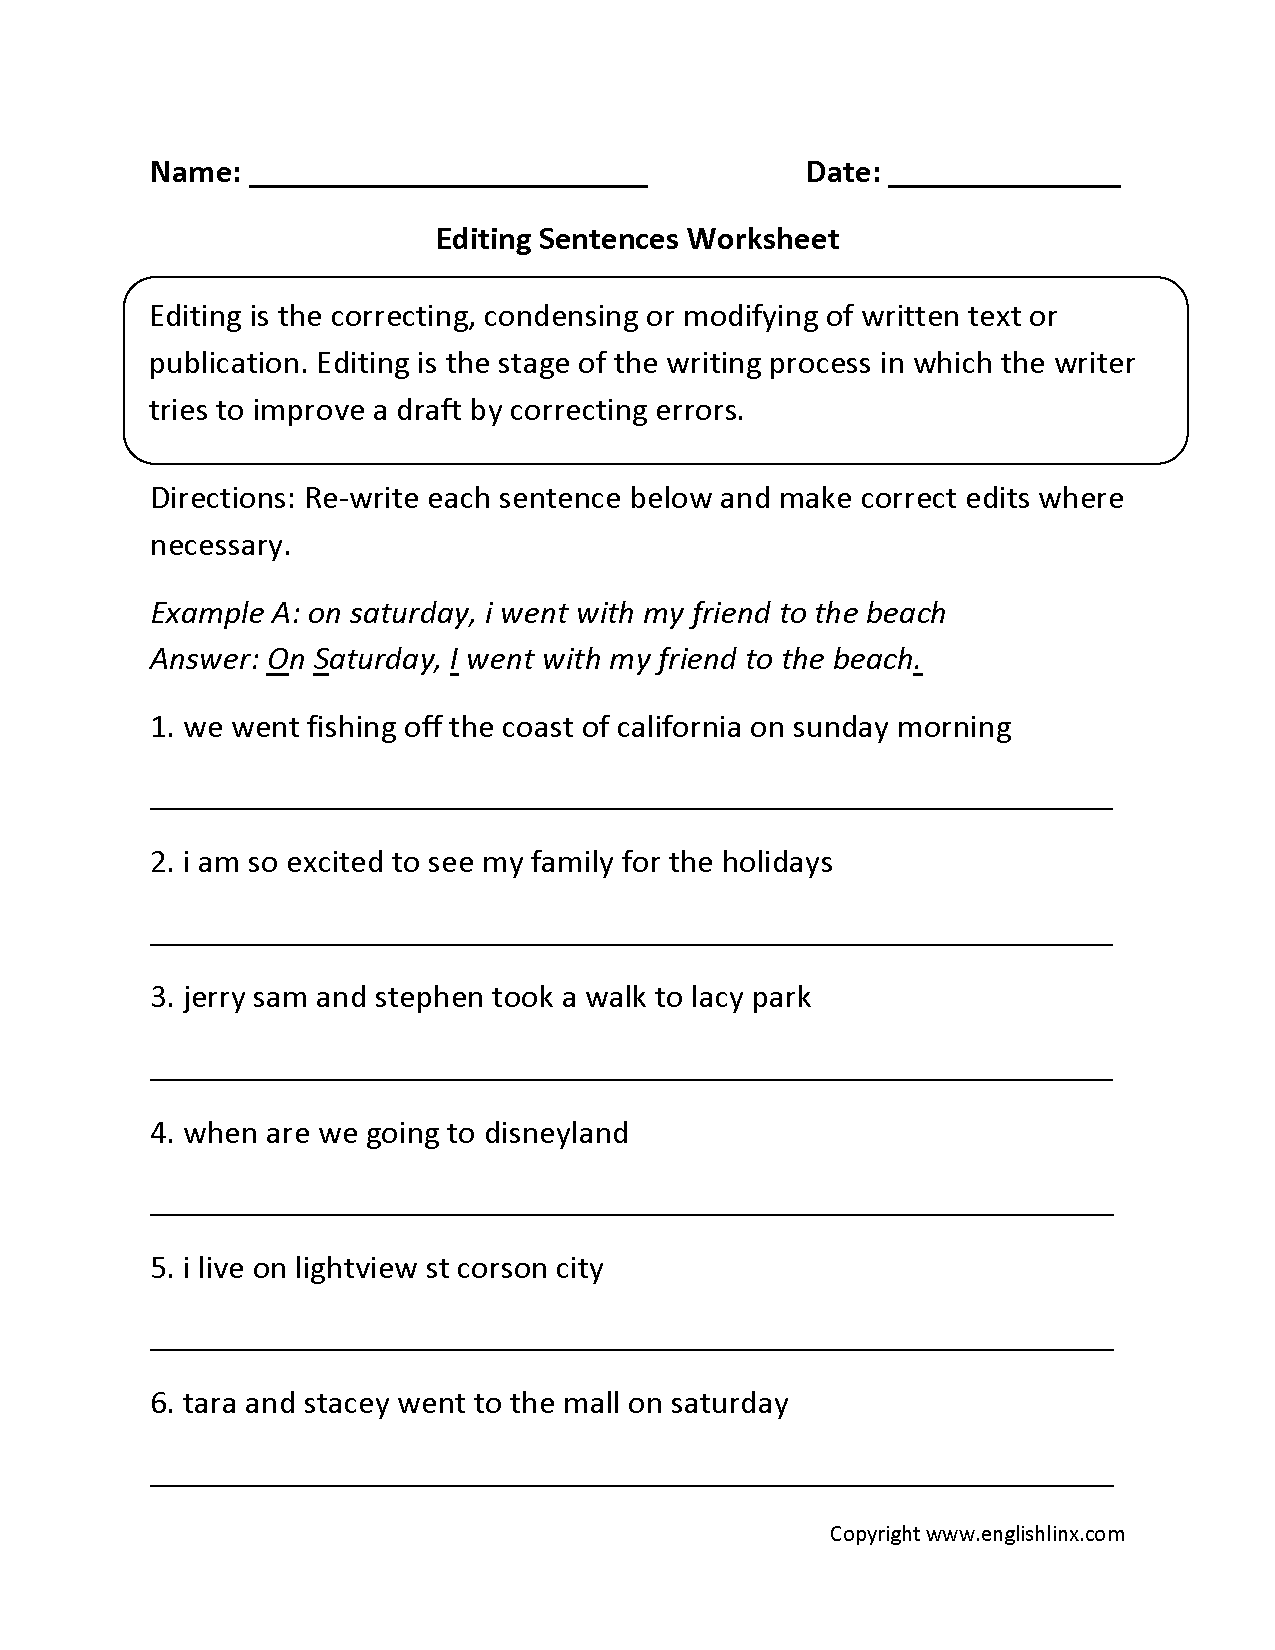 Free Worksheet Correcting Sentences Worksheets writing worksheets editing worksheets